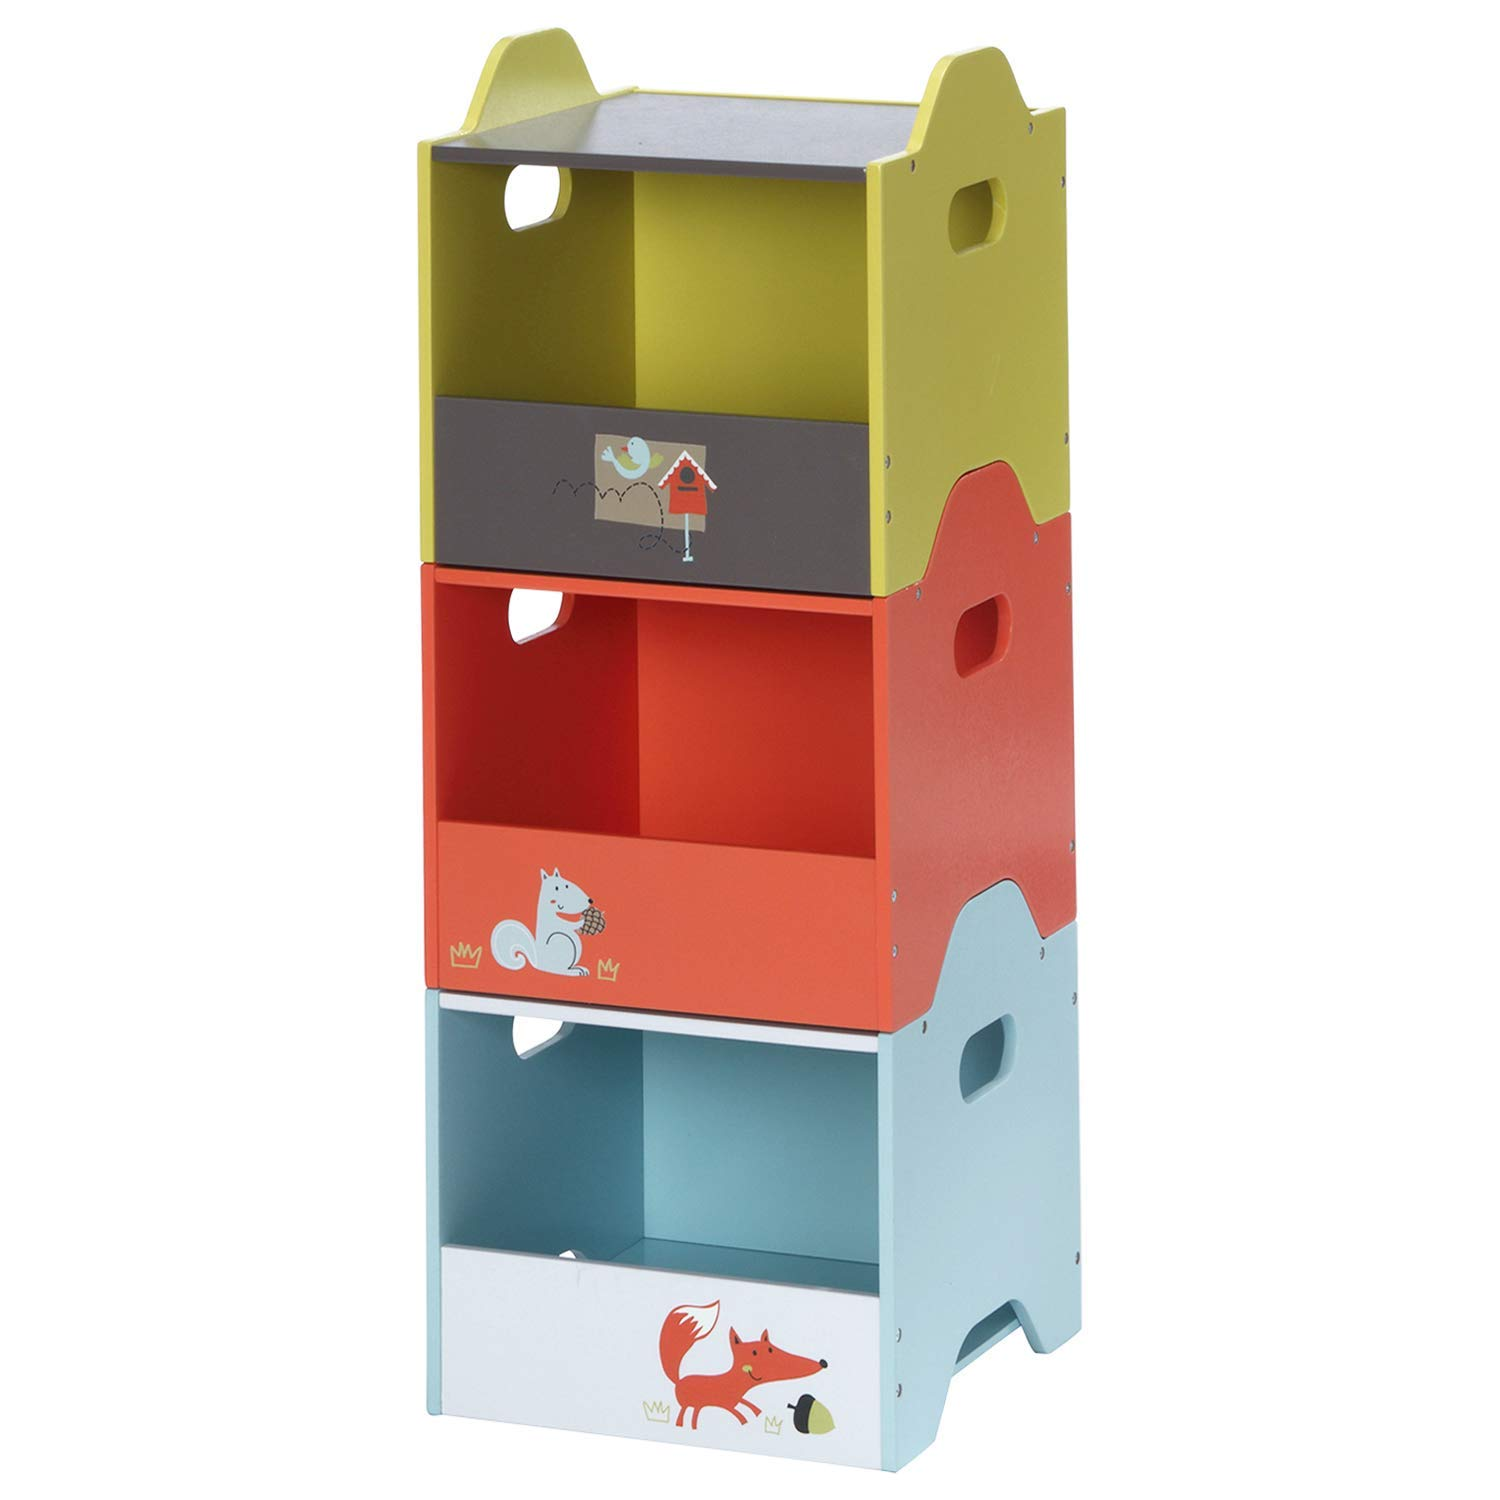 labebe - Storage Bins, Toy Wooden Storage Cubes Box, Kid Toy Organizer and Storage for 1-5 Years Old, 3 Toy Stacking Bins, Cube Useful Stackable Storage Bins, Toy Box Container as Birthday Gift - Fox